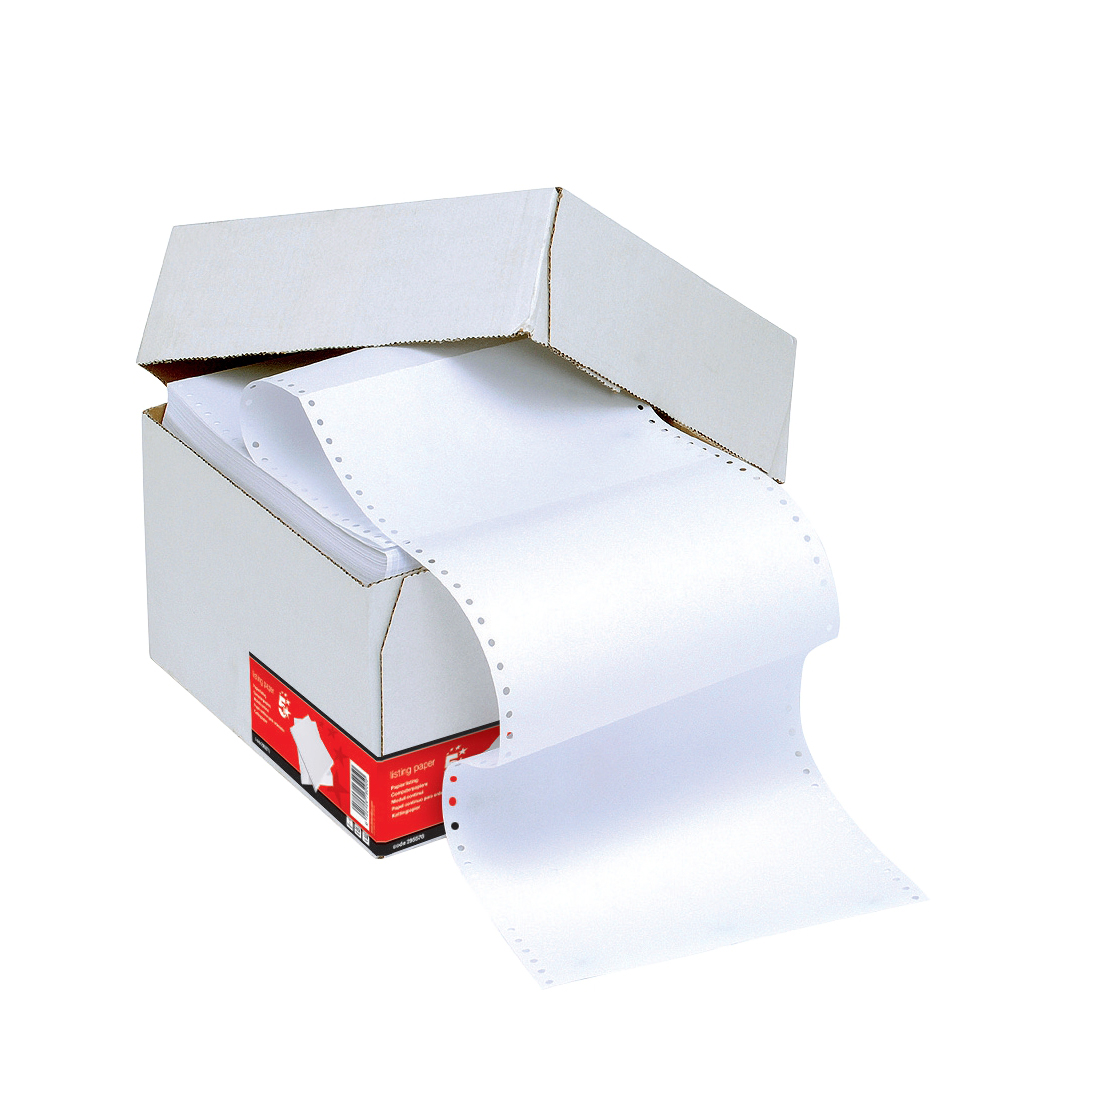 5 Star Office Listing Paper 1-Part Micro-perforated 70gsm 11inchx389mm Plain [2000 Sheets]